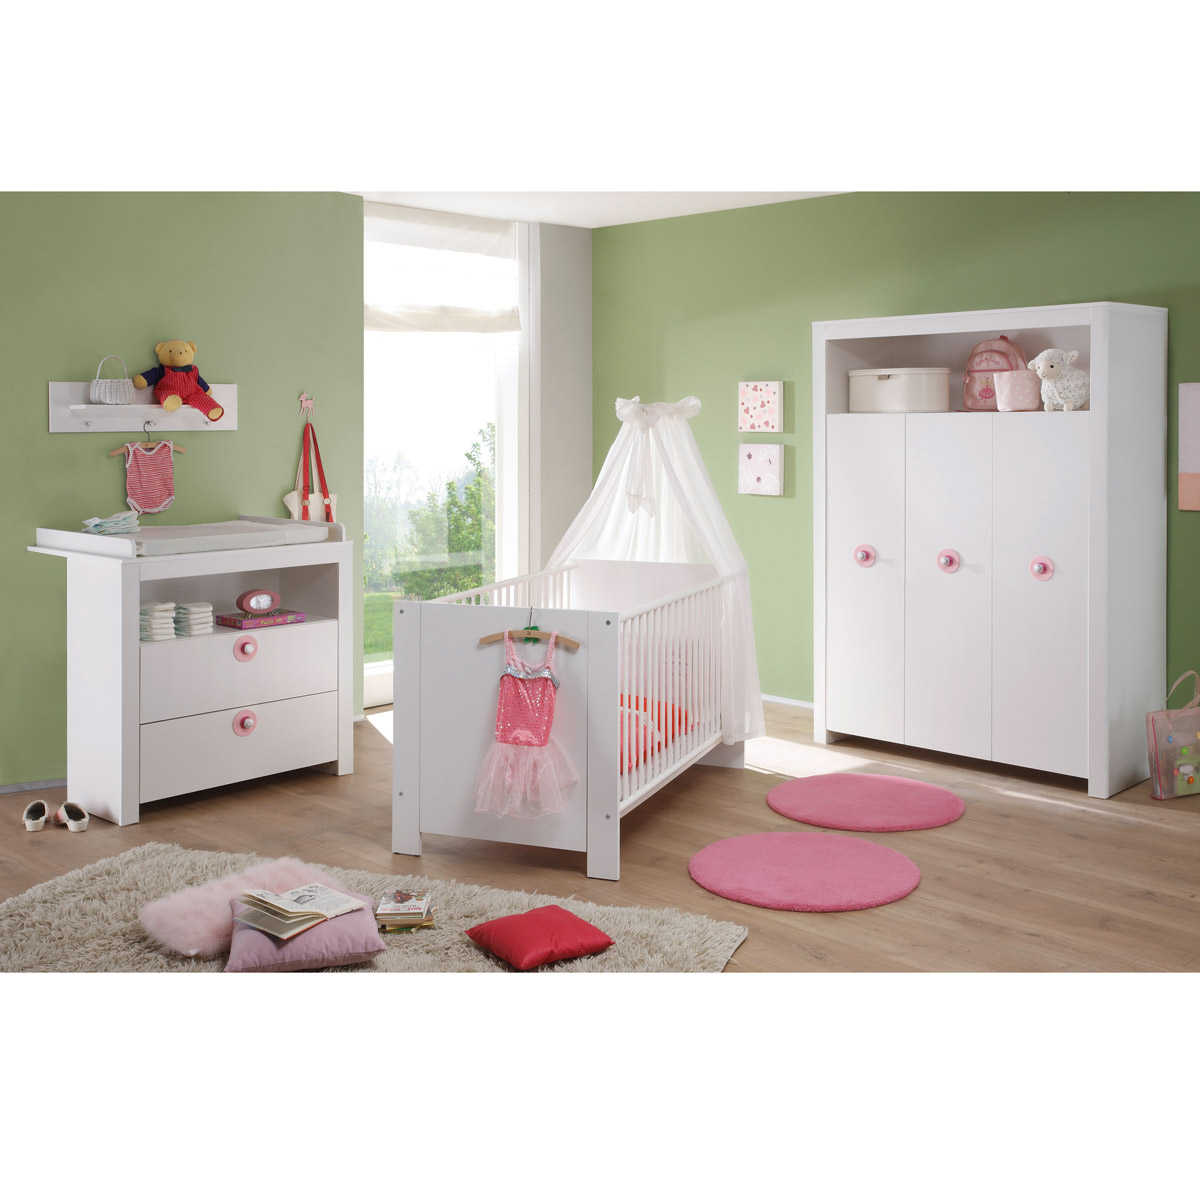 babyzimmer olivia wickelkommode babybett kleiderschrank kinderzimmer gs gepr ft ebay. Black Bedroom Furniture Sets. Home Design Ideas